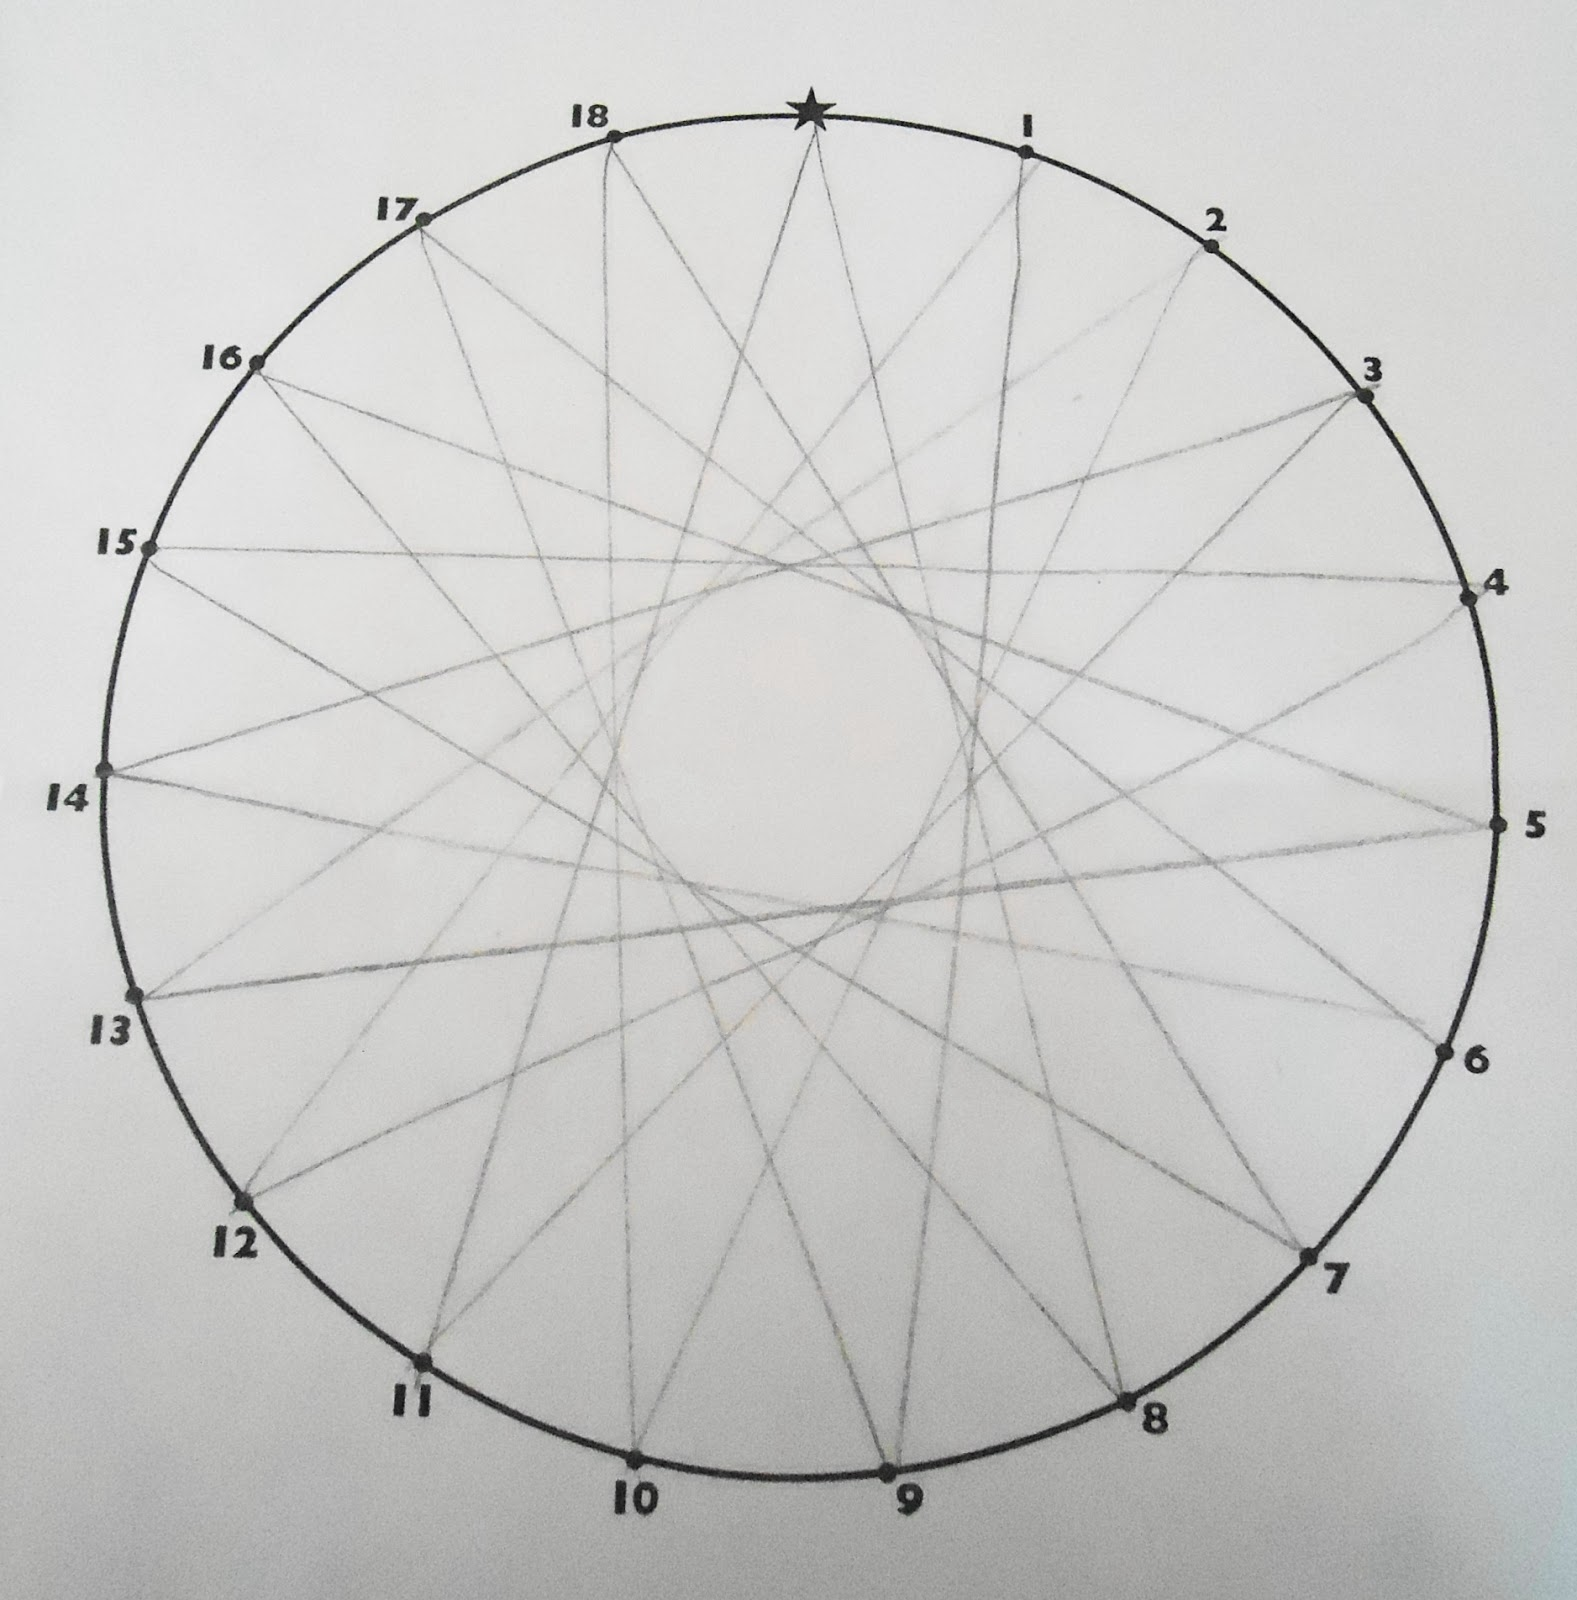 Drawn spider web spiral Teaching To with Making number